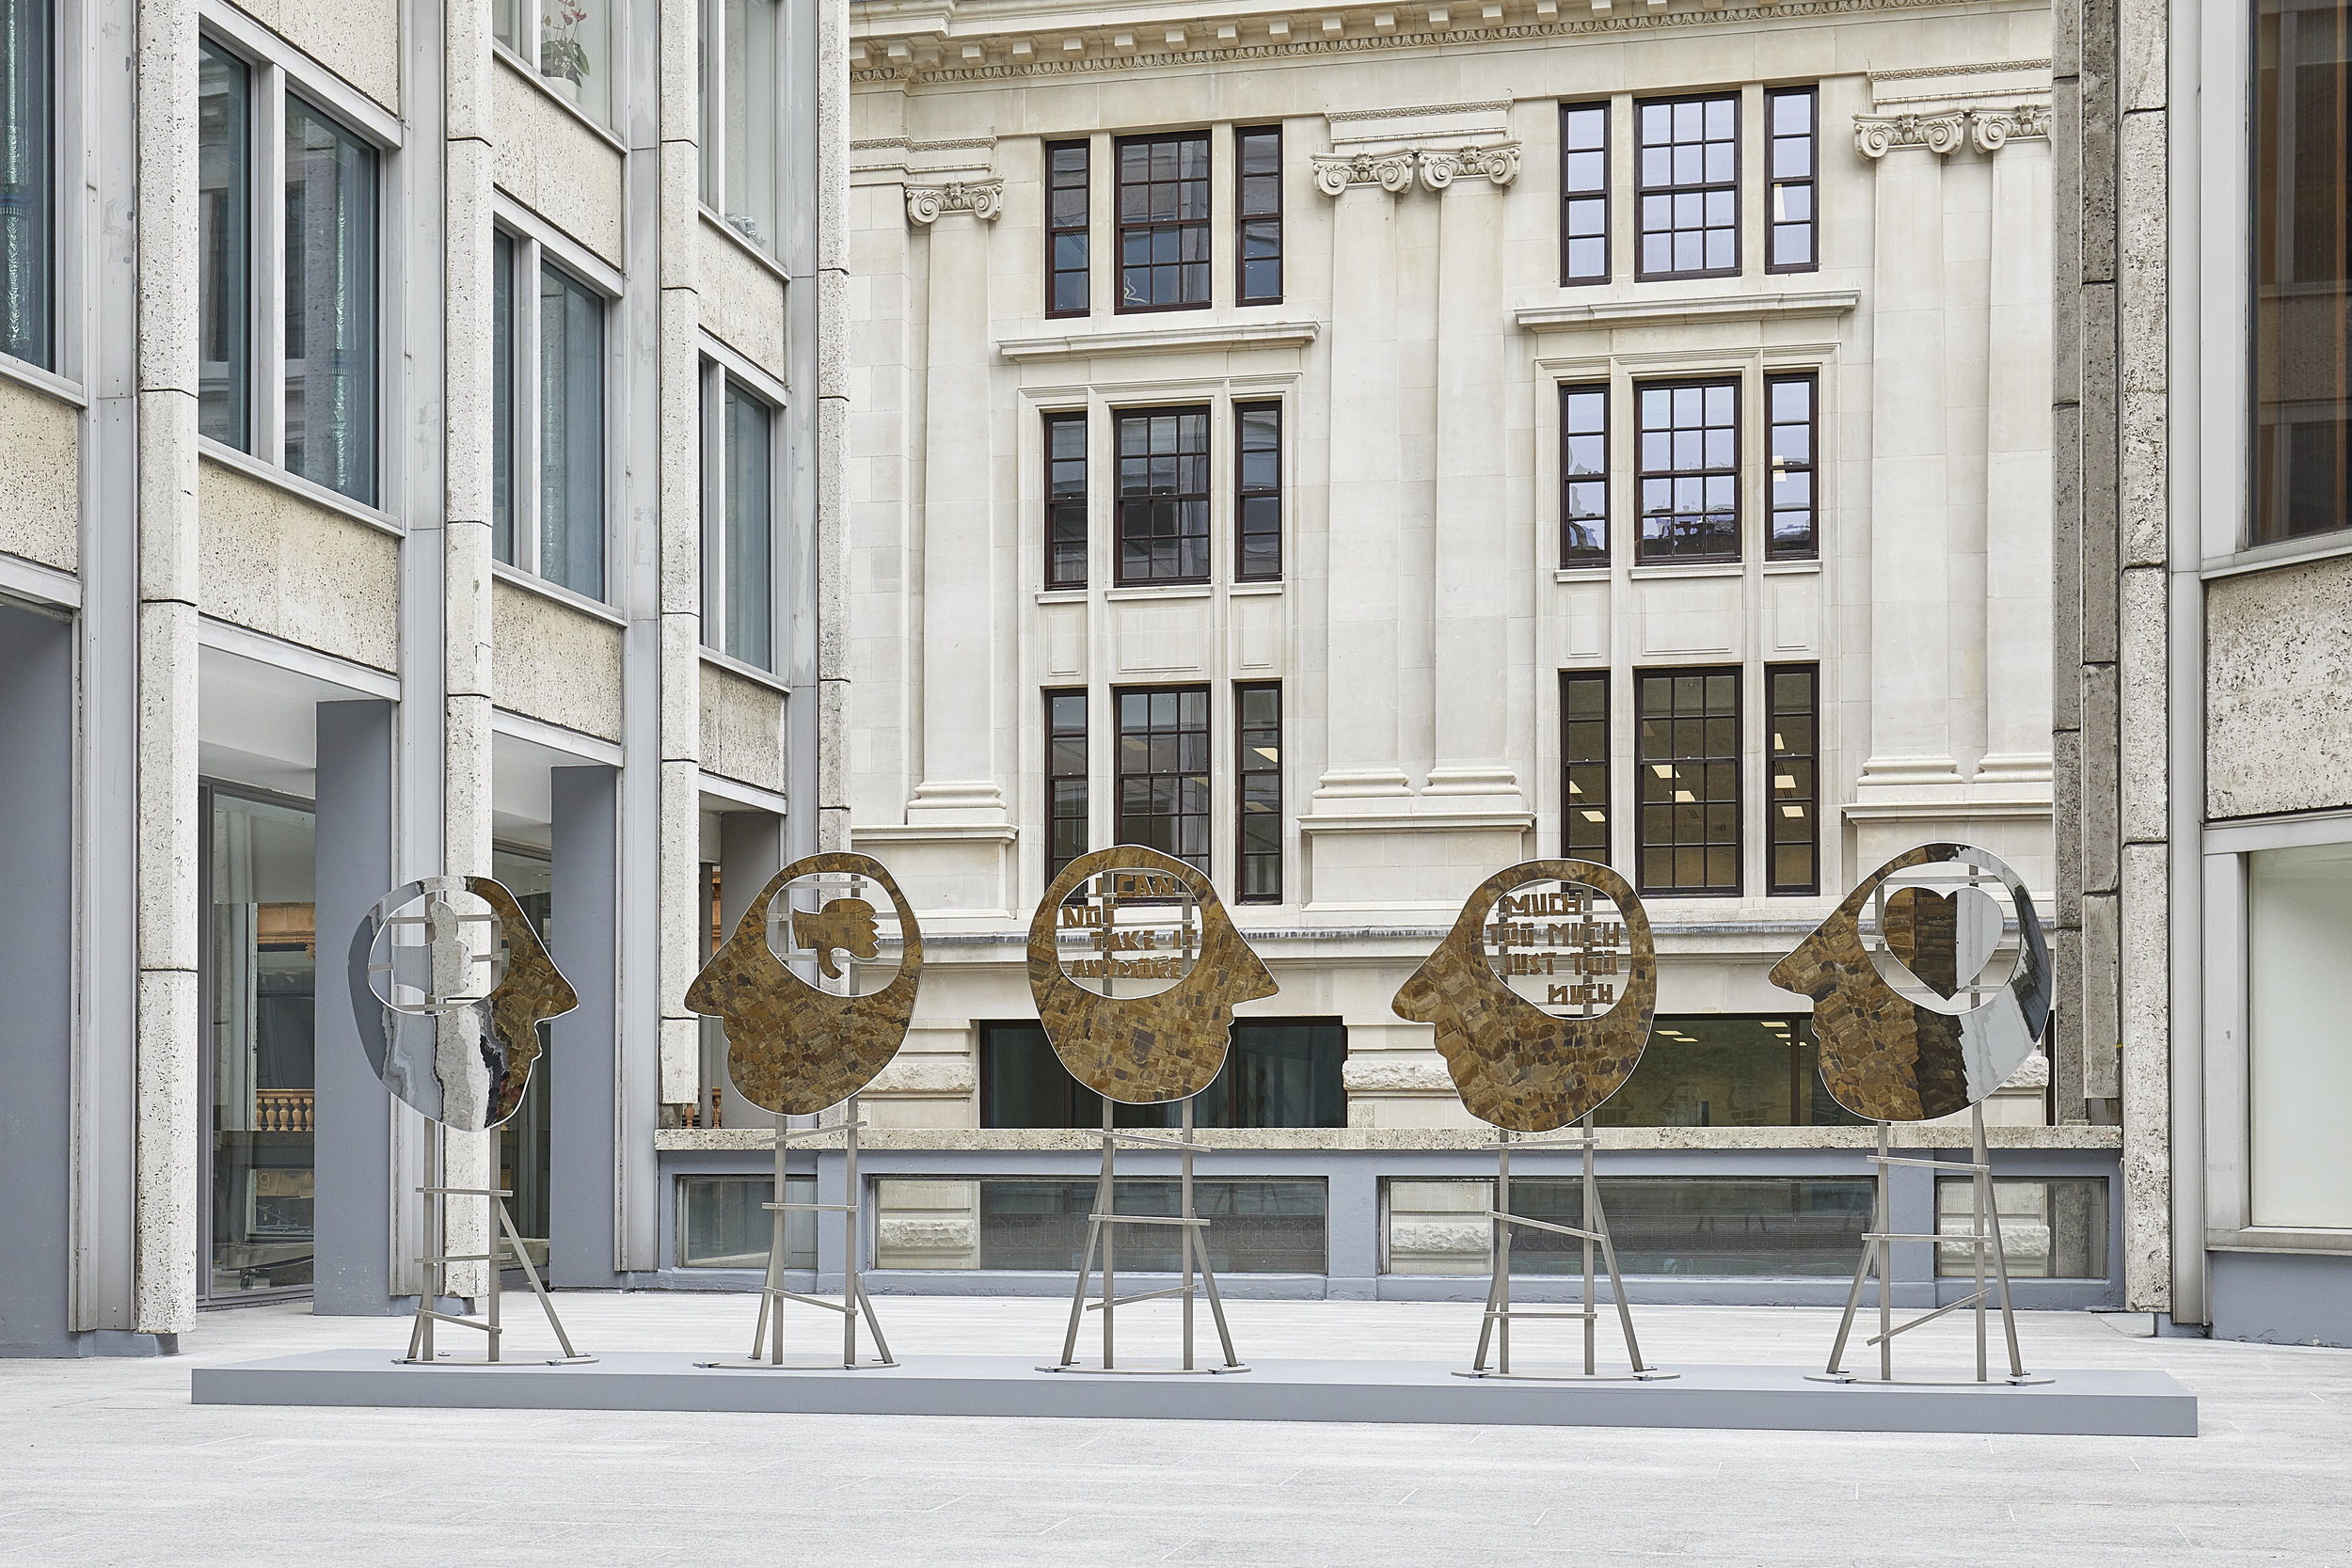 'HEADS' BY OLAF BREUNING INSTALLED IN SMITHSON PLAZA ST JAMES'S IN COLLABORATION WITH CASS SCULPTURE FOUNDATION AND METRO PICTURES.   READ FEATURE IN WALLPAPER MAGAZINE   June 2018